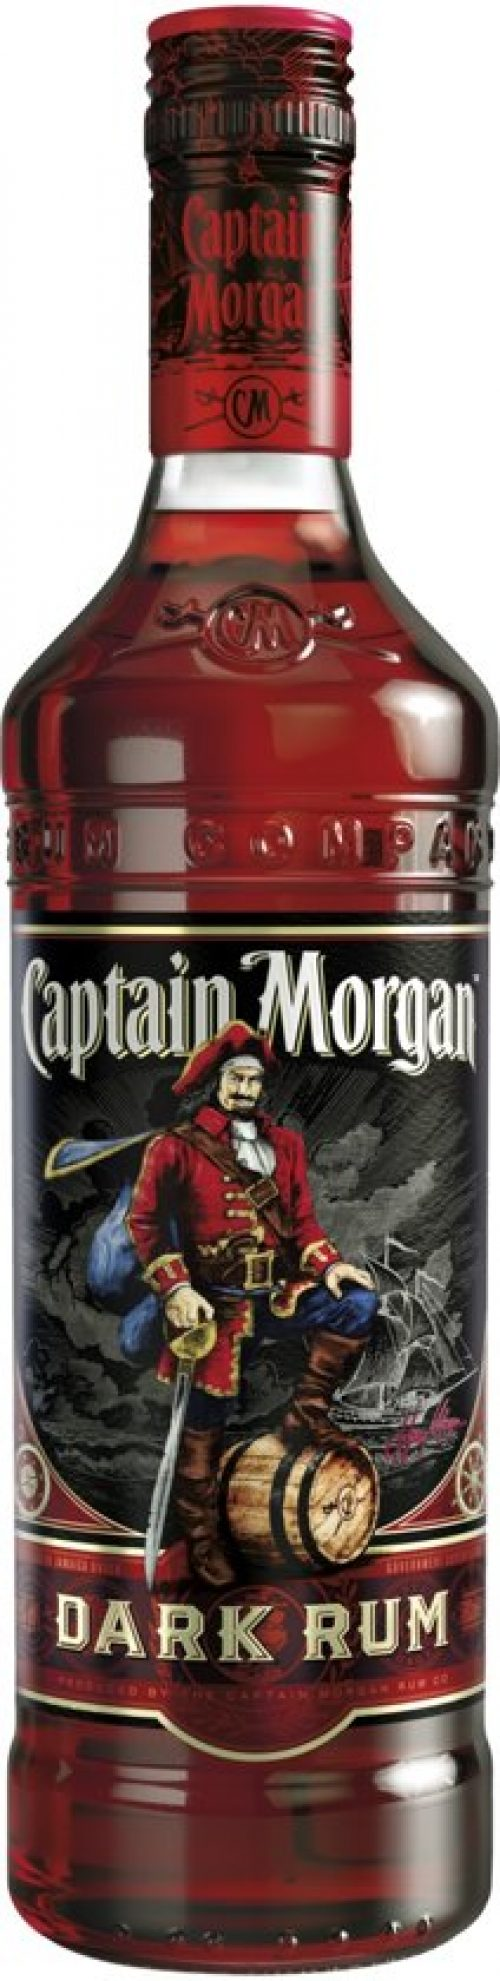 Captain Morgan Jamaica Rum - 1 x 70 cl